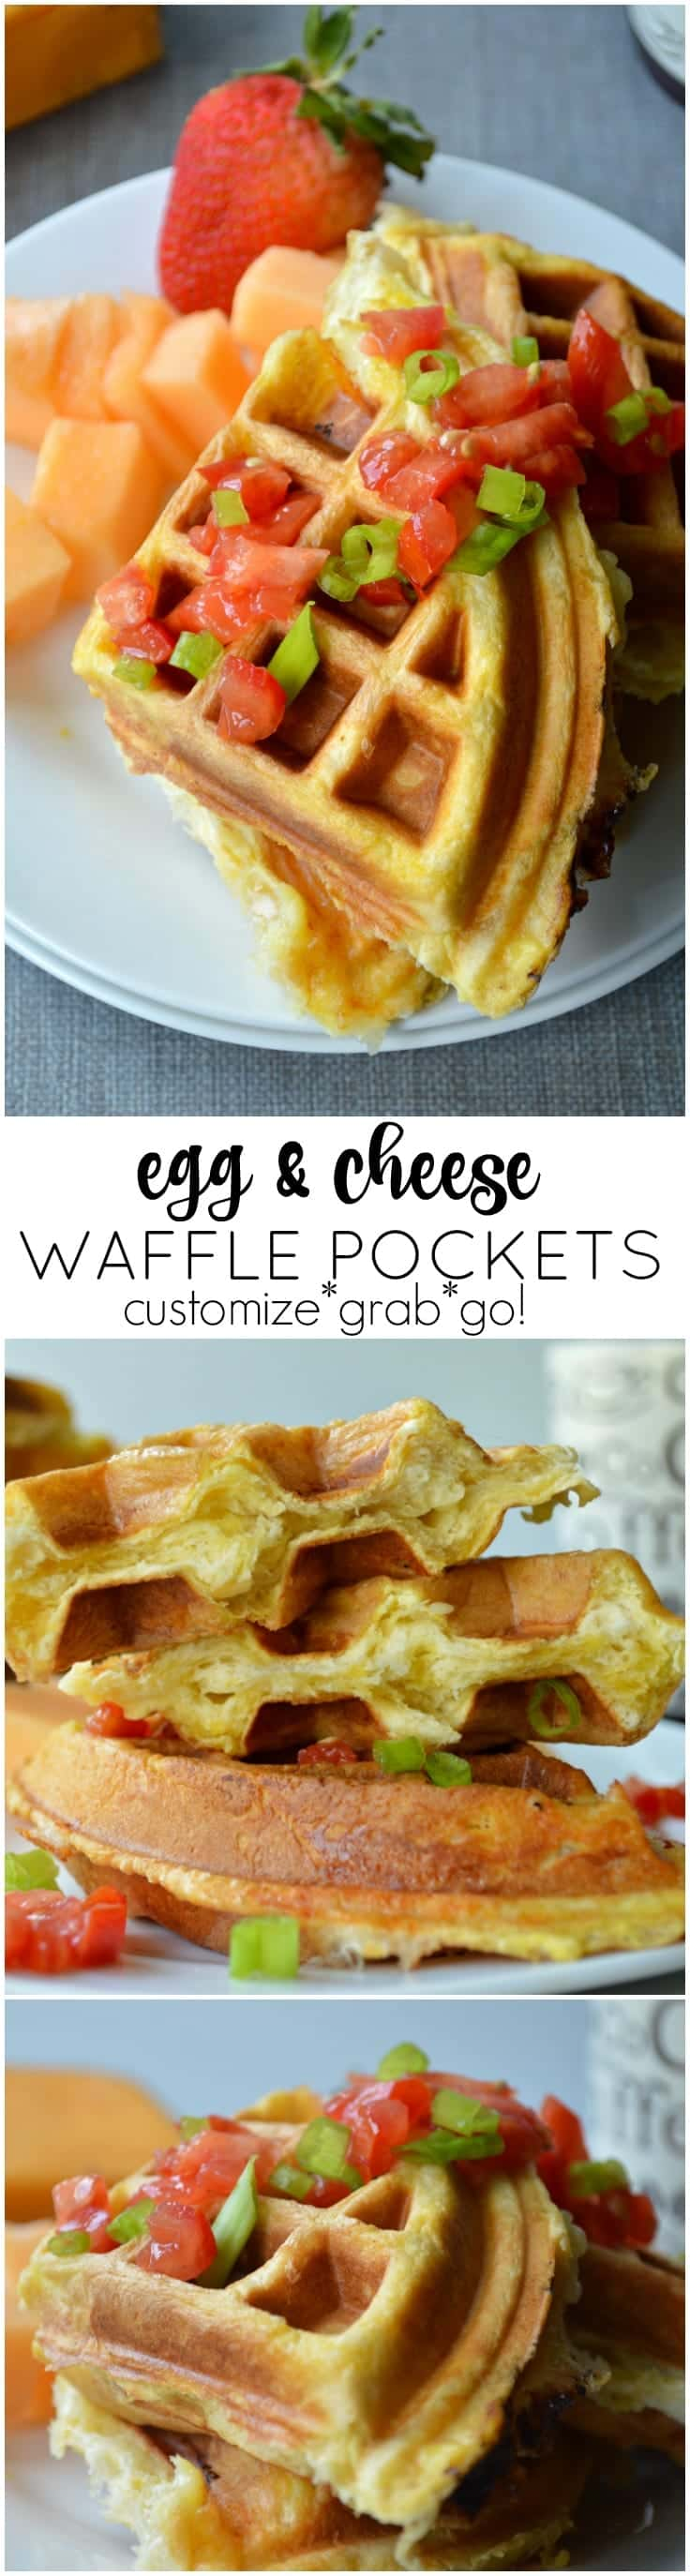 These Egg and Cheese Waffle Pockets are the easiest breakfast on the go! Made with refrigerated biscuit dough, it's simple to change the flavor to suit you!